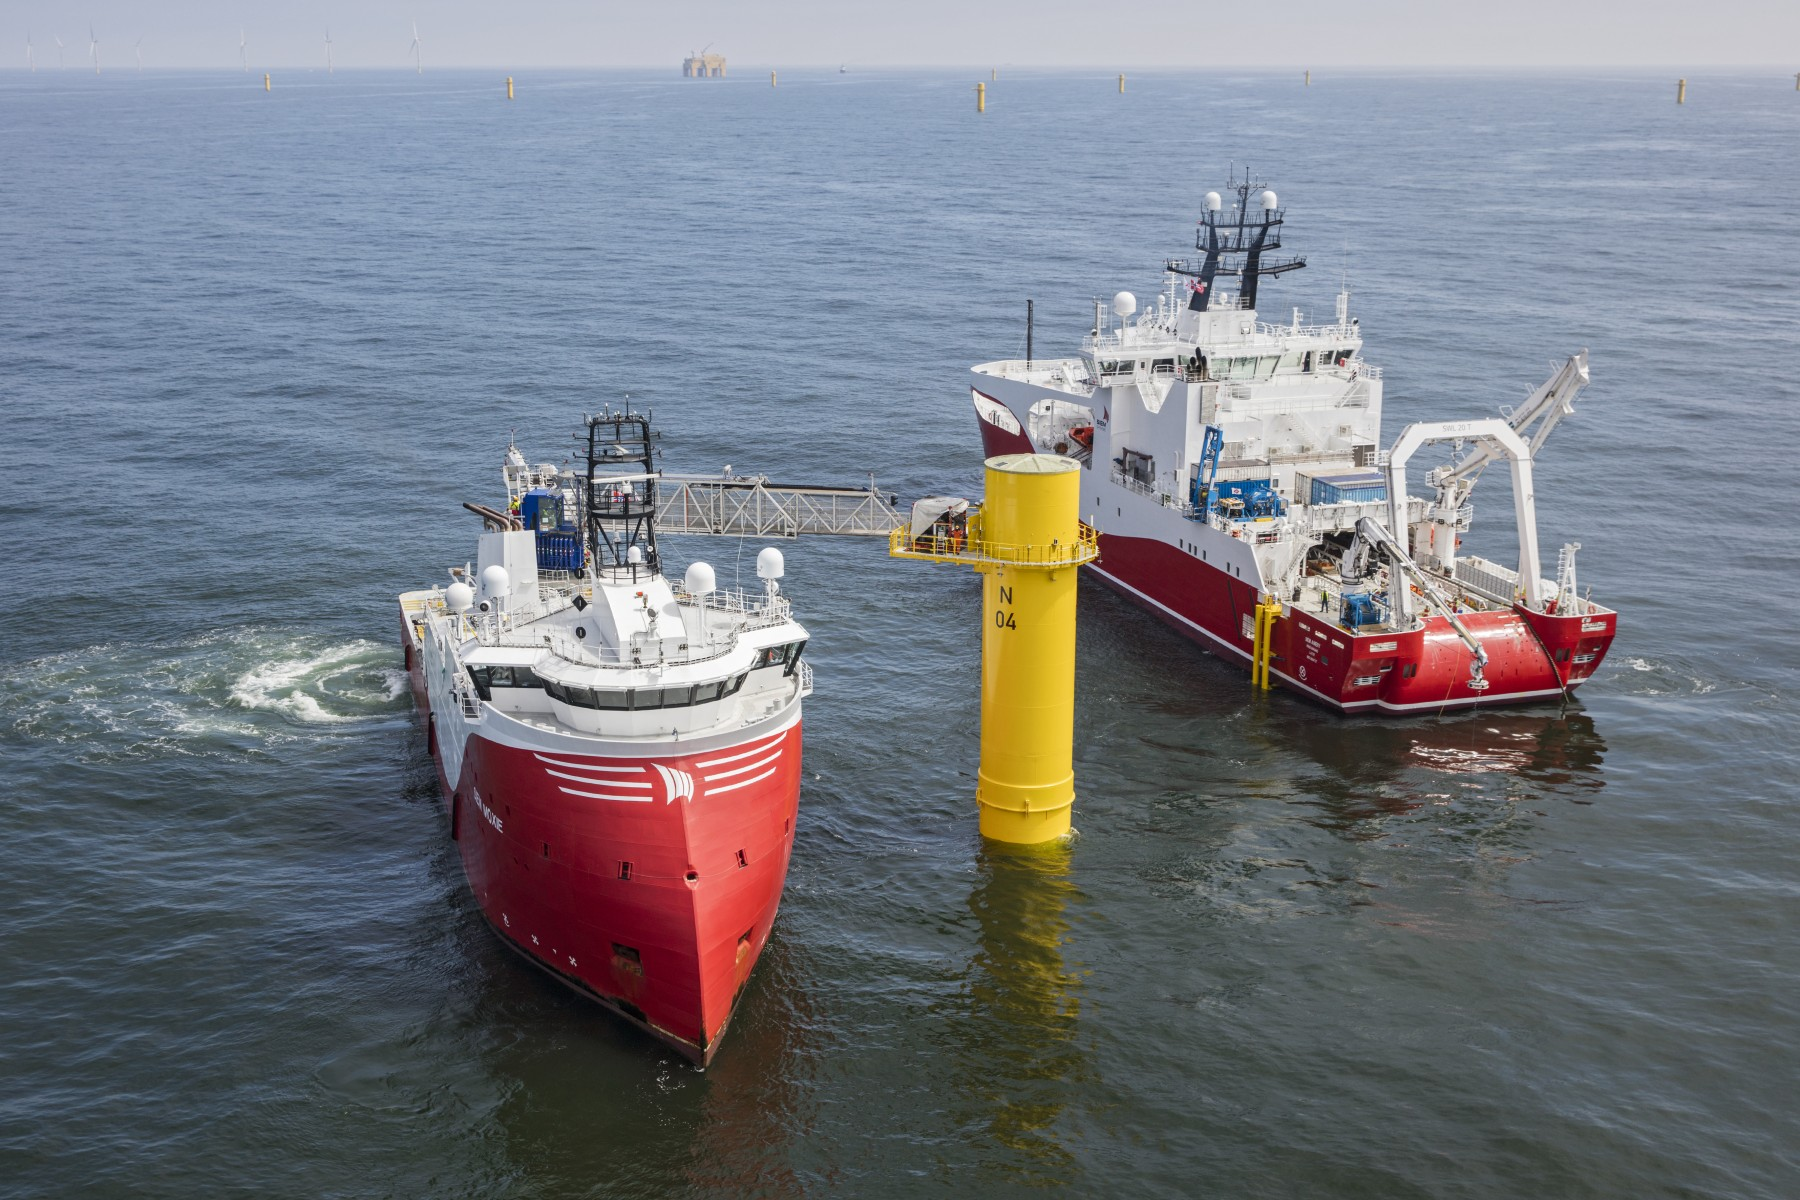 Offshore-Windpark Nordsee One